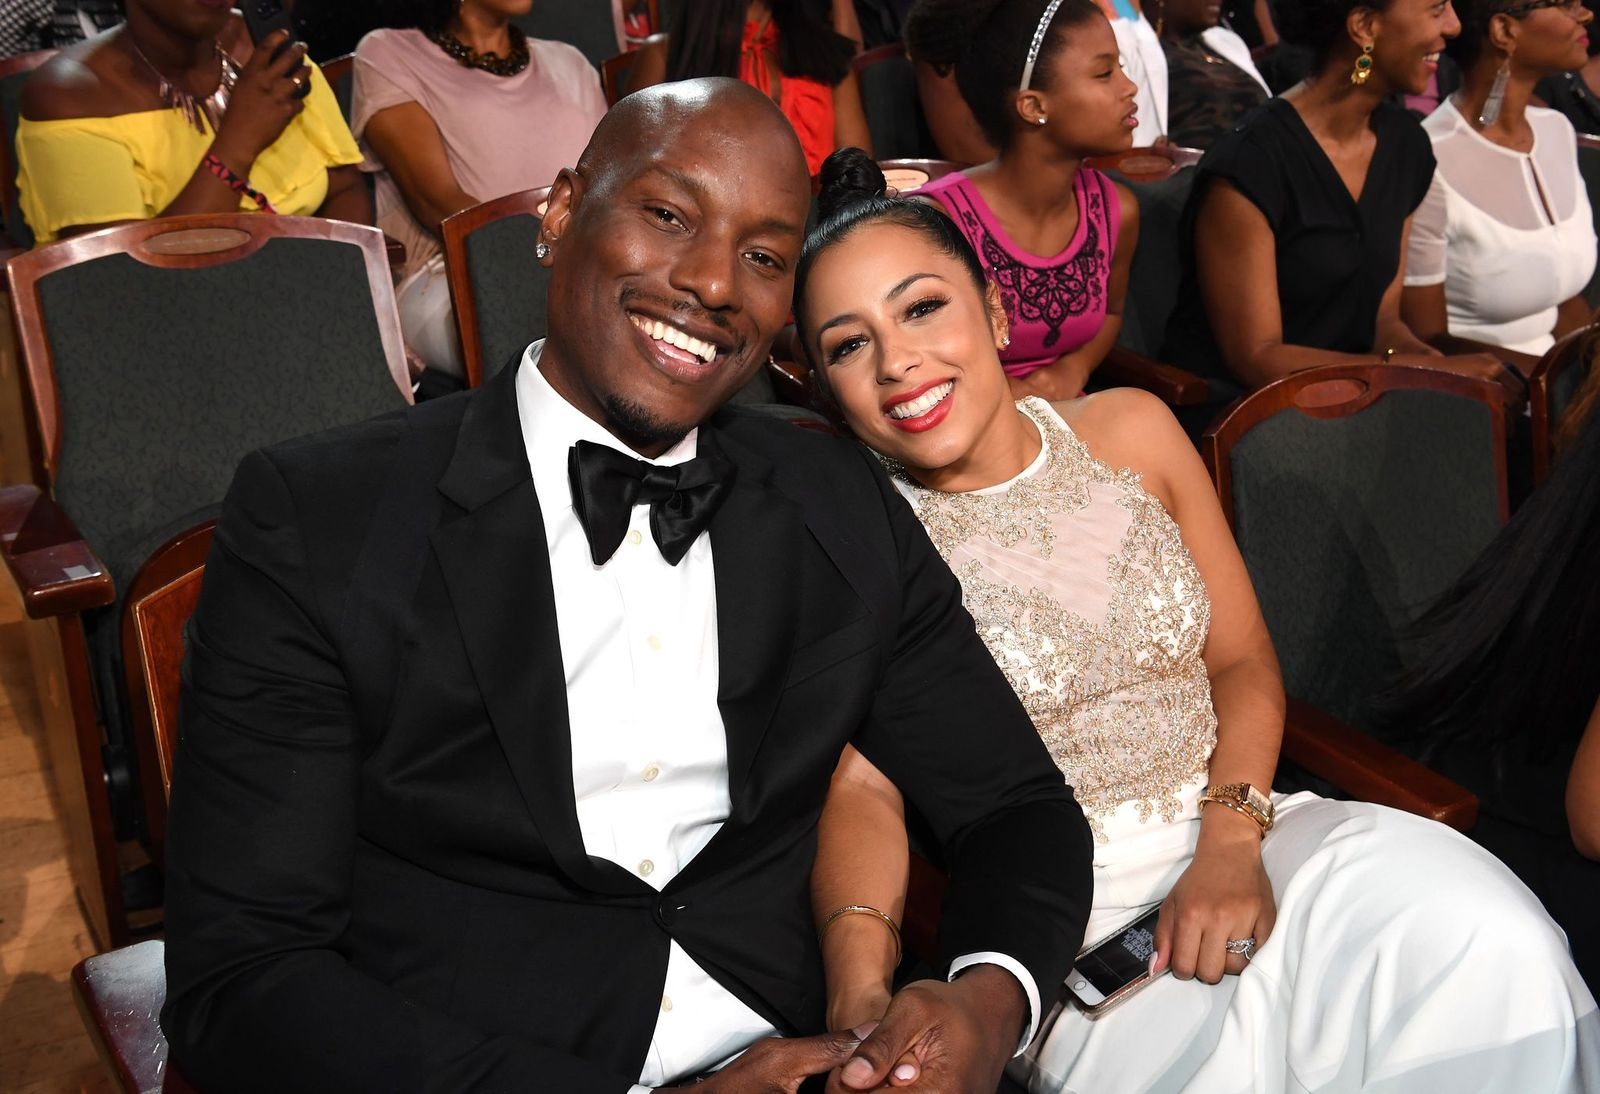 Tyrese & Samantha Gibson at 'Black Girls Rock!' in 2017 in New Jersey   Source: Getty Images